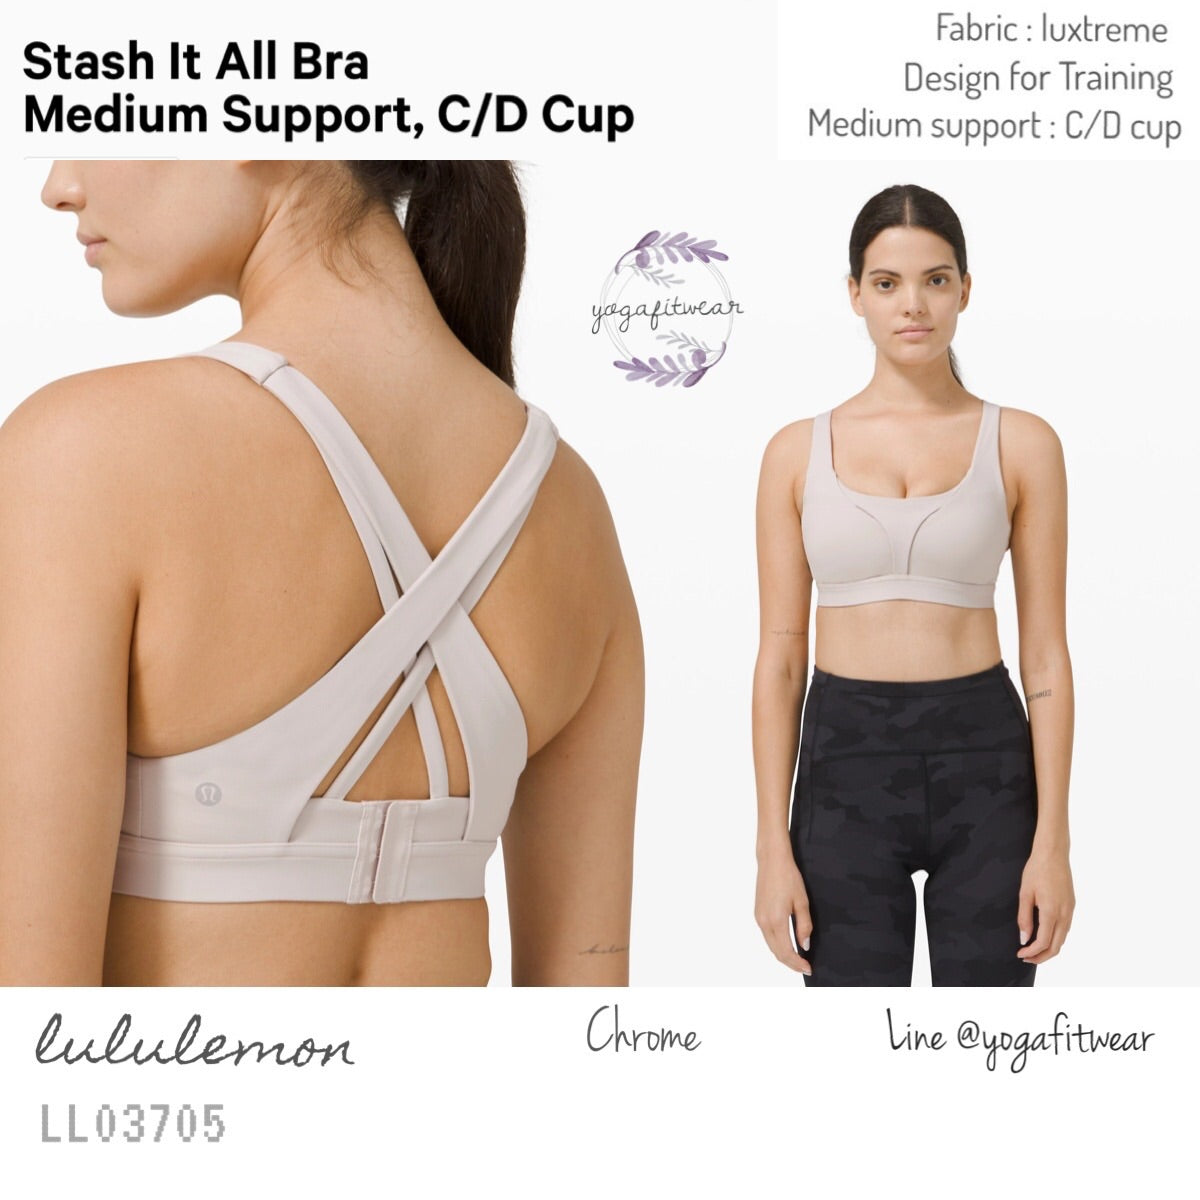 Lululemon : Stash It All Bra *Medium Support C/D Cup (Chrome) (LL03705)